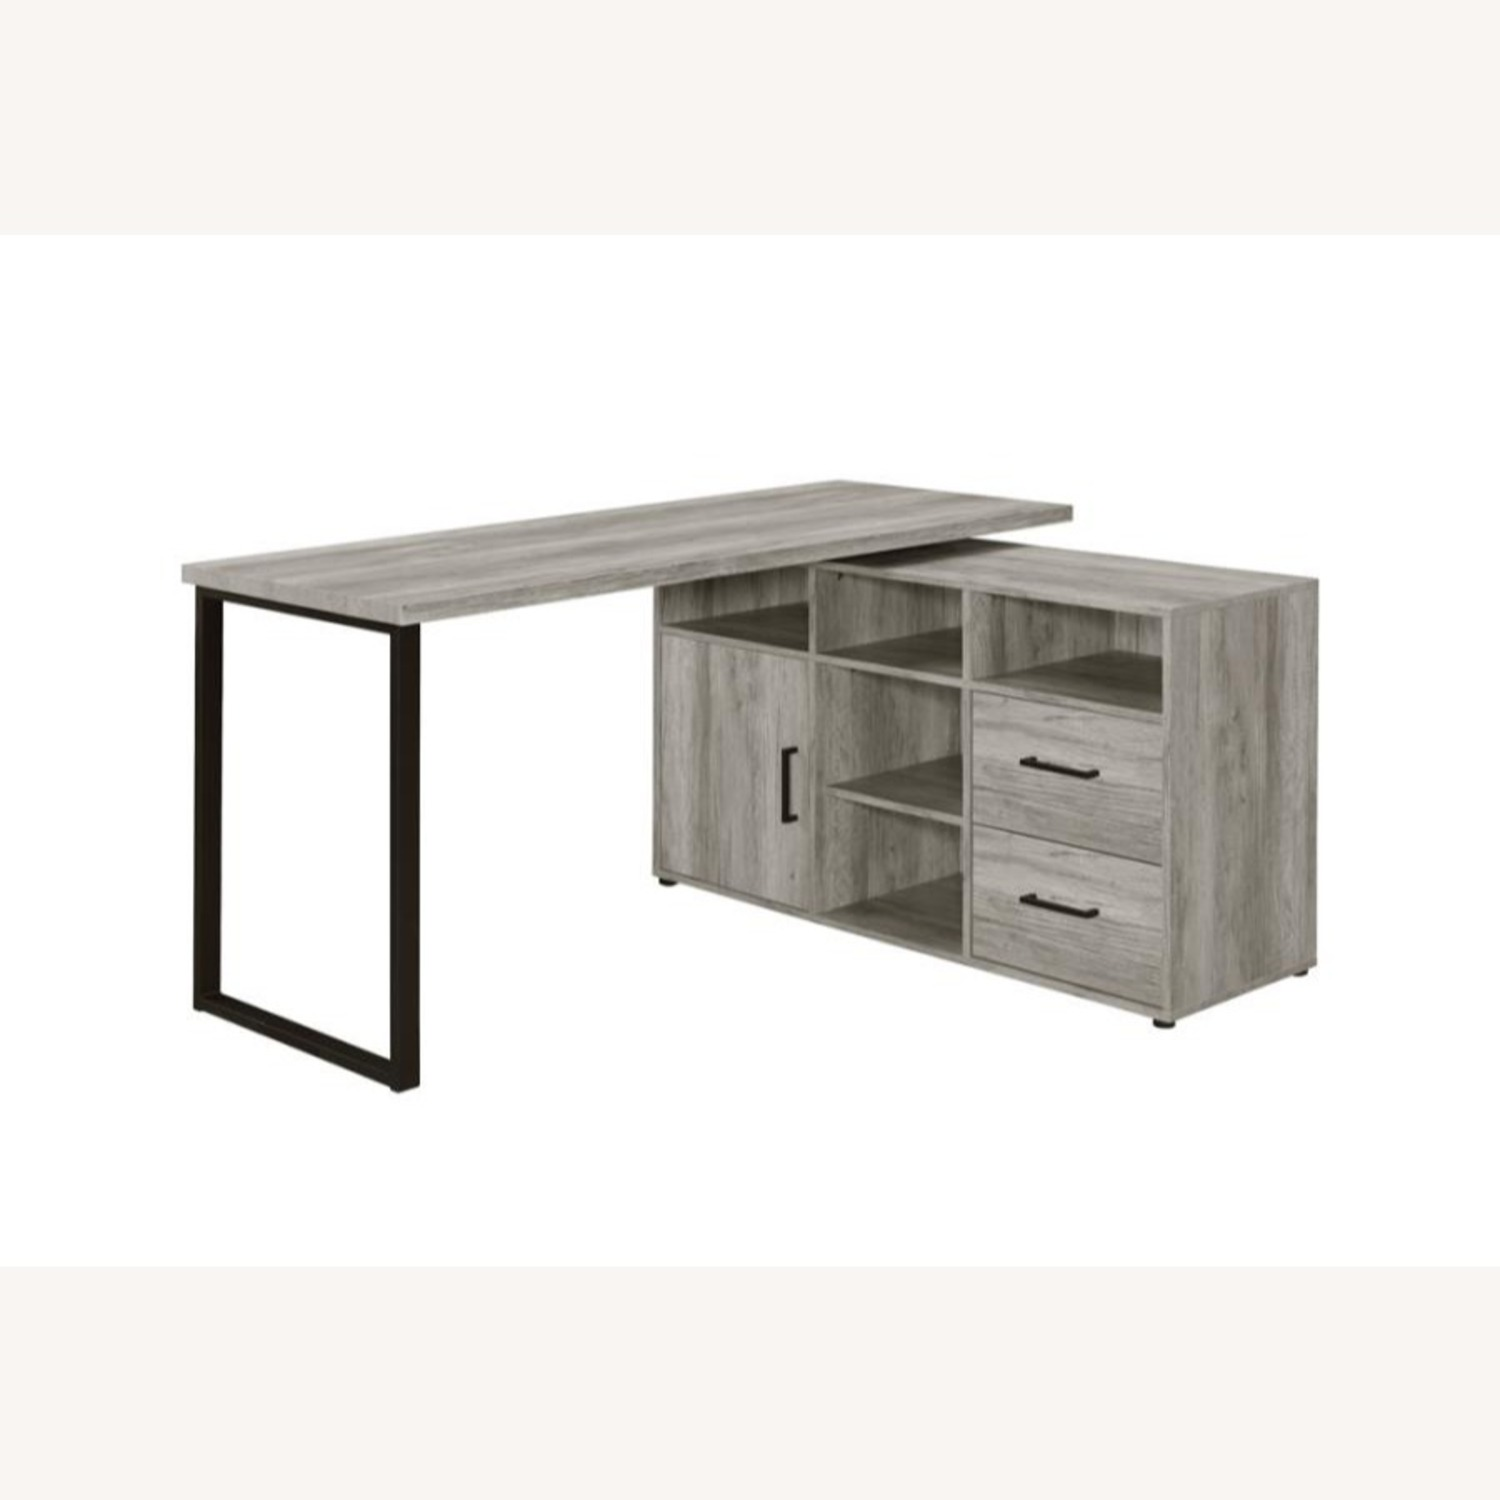 L-Shaped Office Desk In Grey Driftwood Finish - image-0